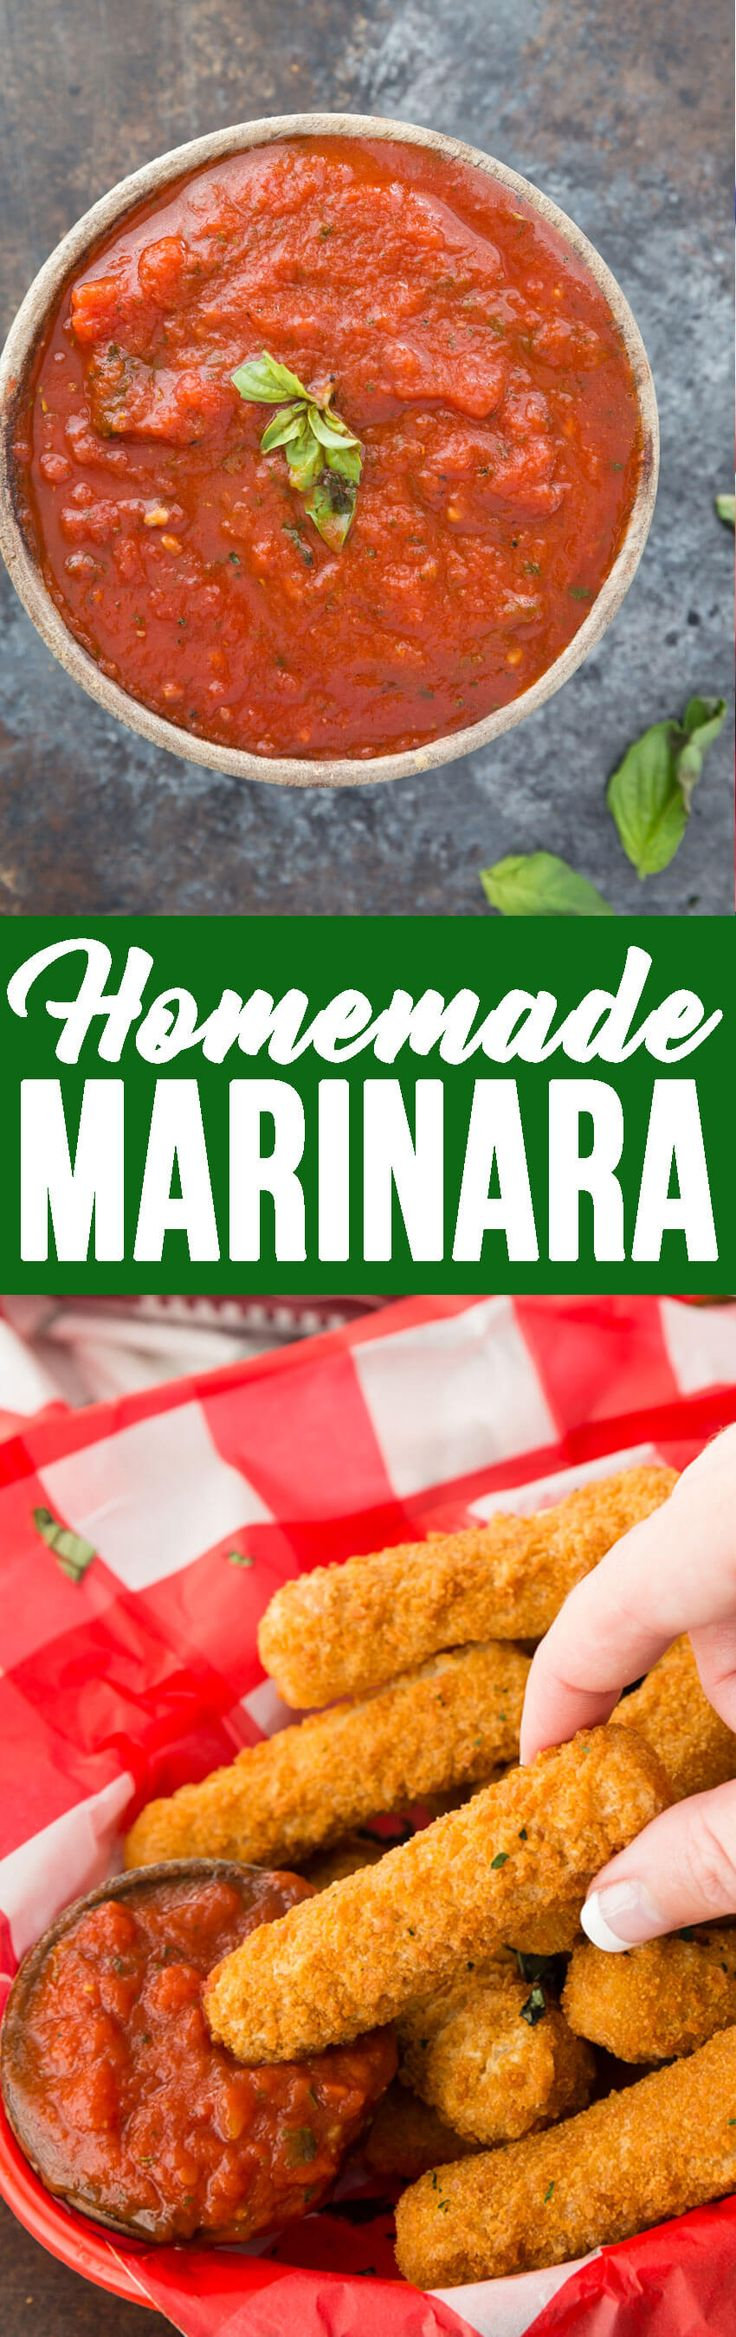 Homemade Marinara is the perfect gameday dipping sauce! #marinara #dippingsauce #gamedayfood #ad #snack #homegatinghero @FarmRichSnacks